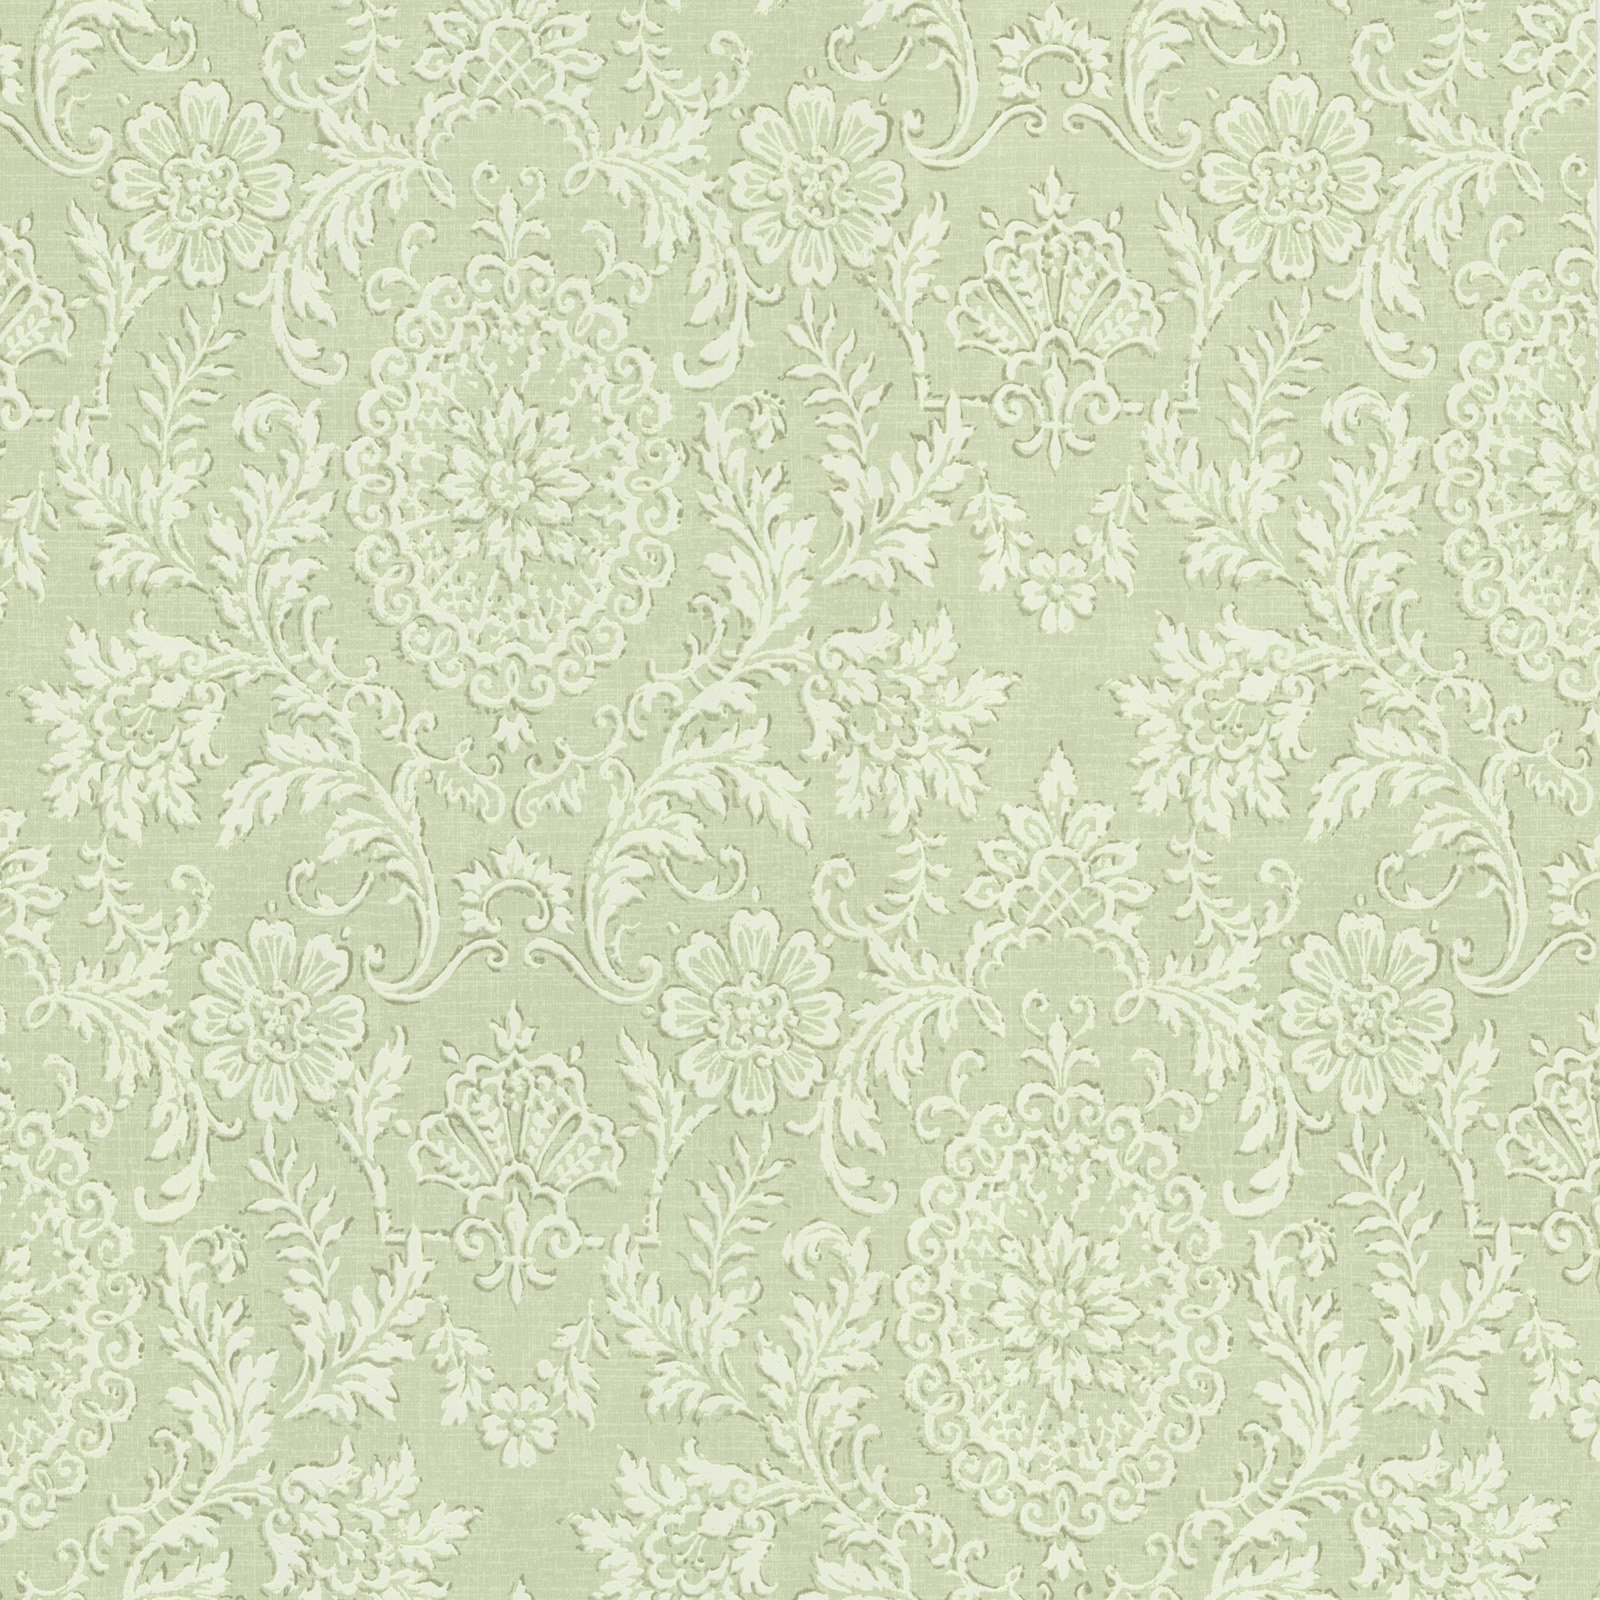 Brewster Home Fashions La Belle 33' x 20.5'' Maison Ornament Wallpaper Roll